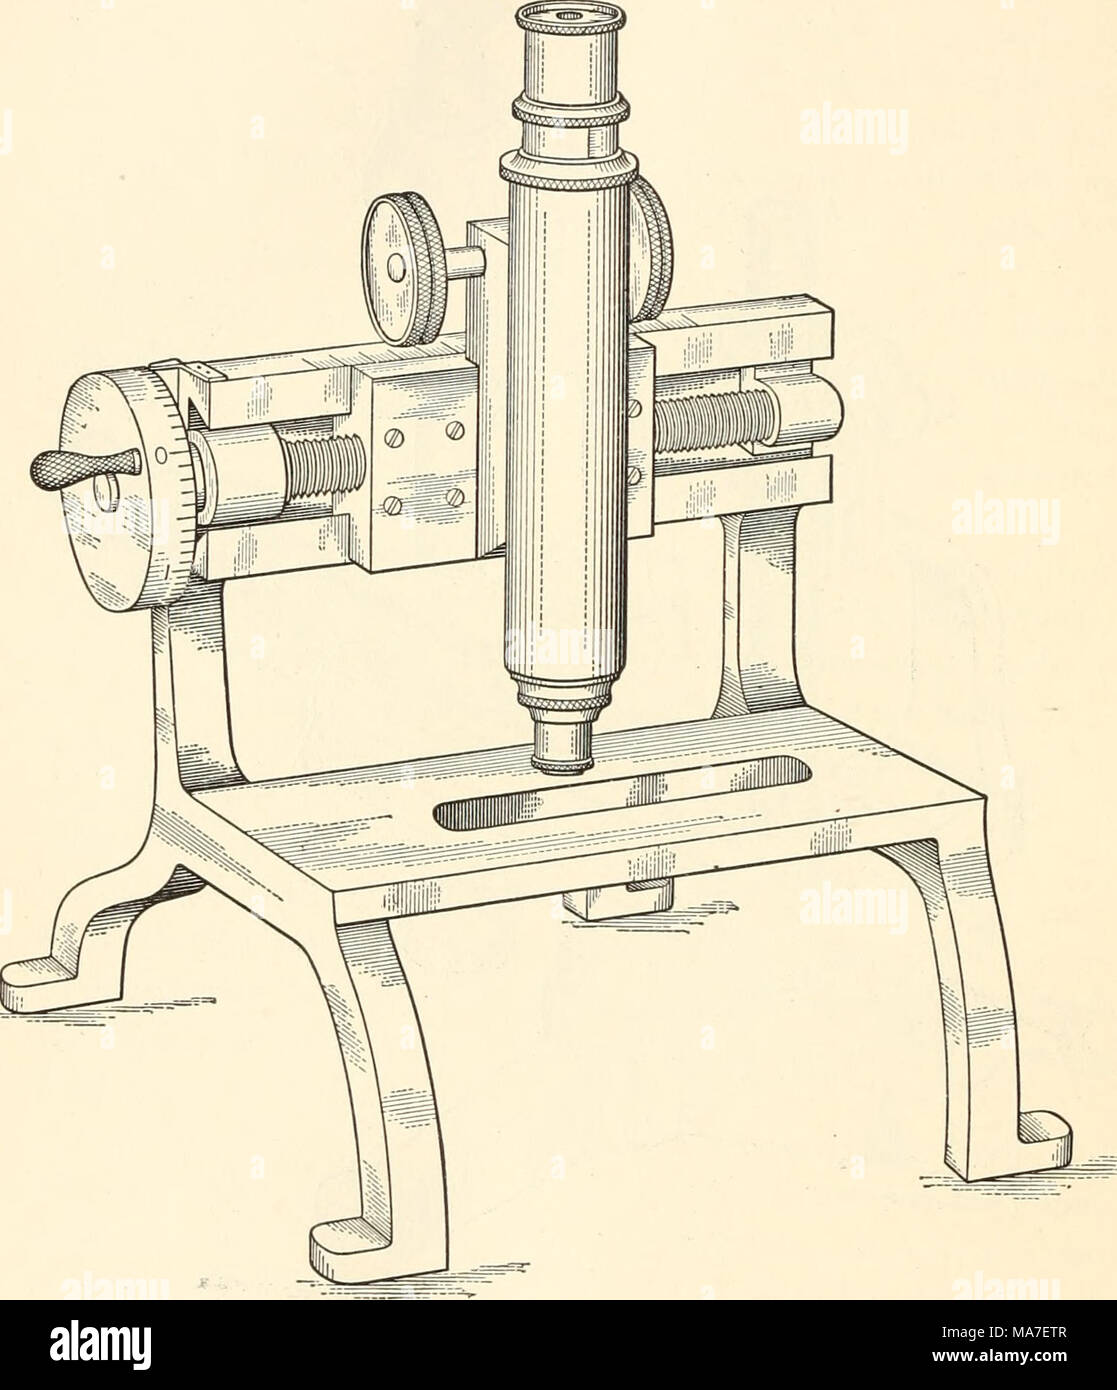 . Elementary chemical microscopy . Fig. 113. Beck Micrometer Microscope. of one division on the scale of the stage S2. The object to be studied is placed upon the section S 1 of the stage and clamped in place, the stage S having been first moved by hand by the knob K to the most convenient place for beginning the measurements. - Stock Image